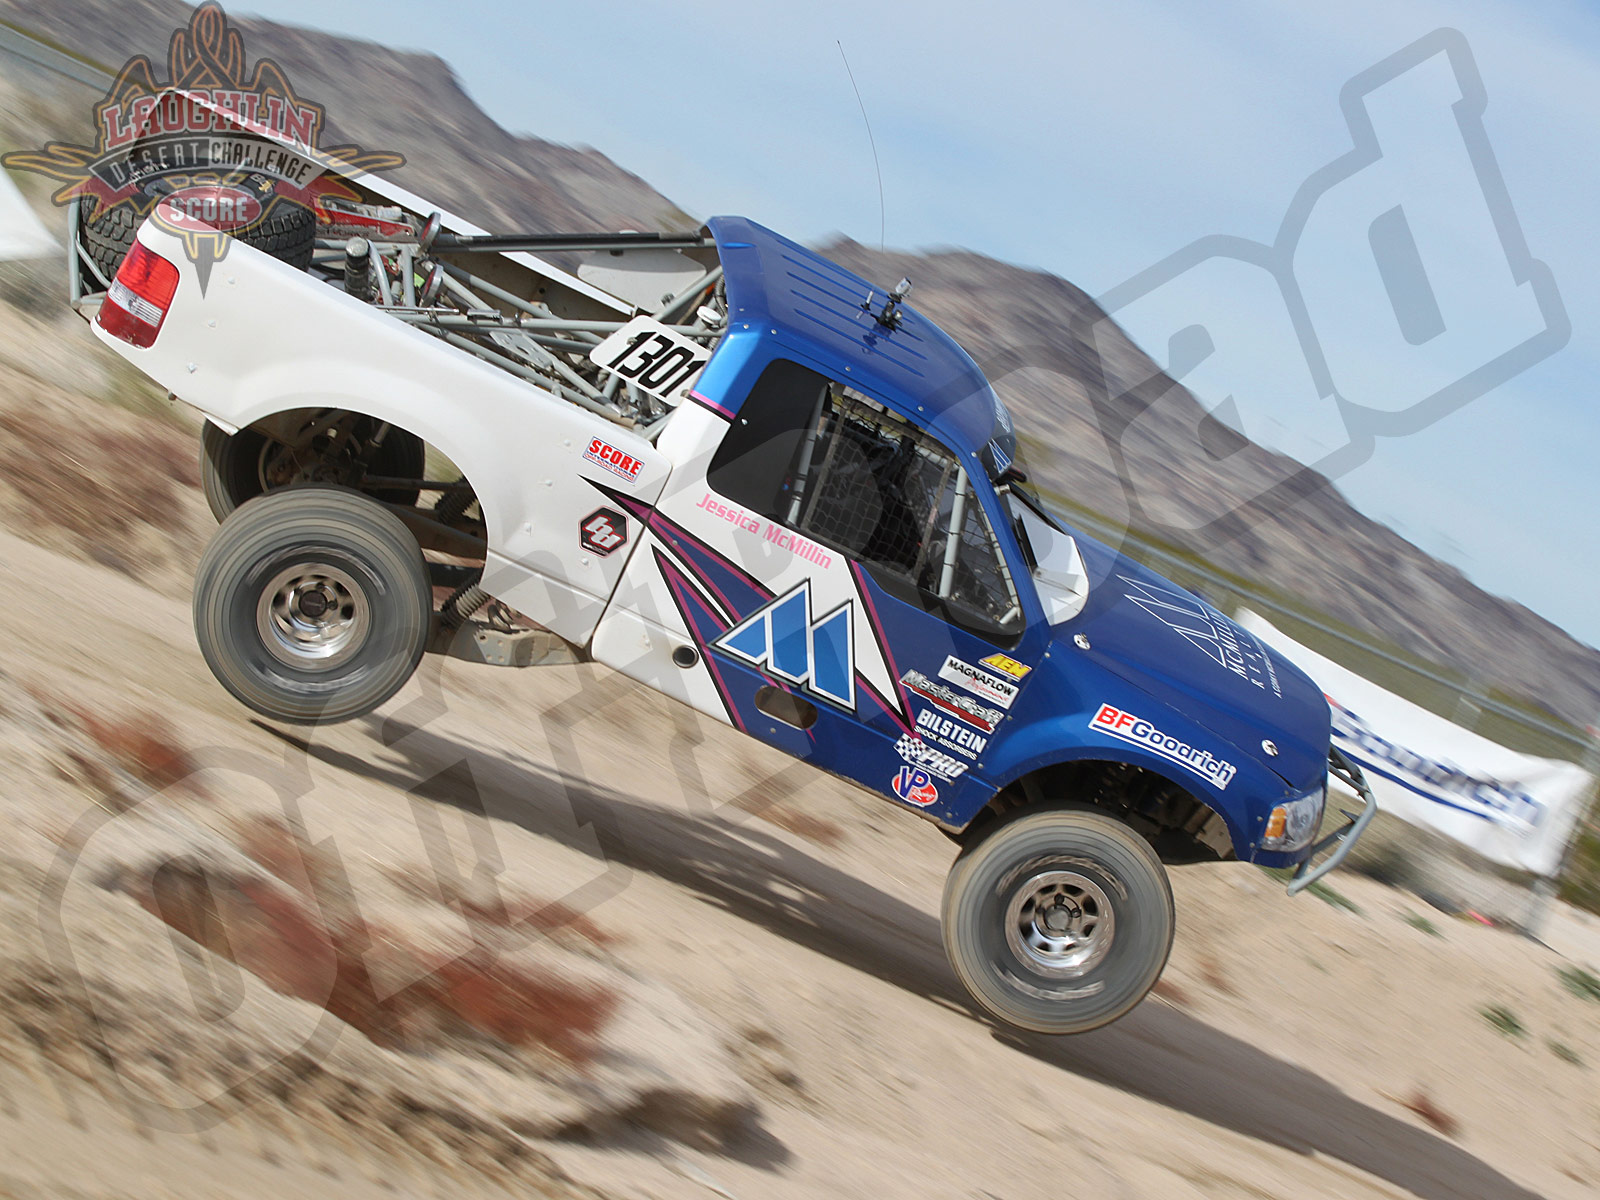 012011or 6637+2011 score laughlin desert challenge+truck classes